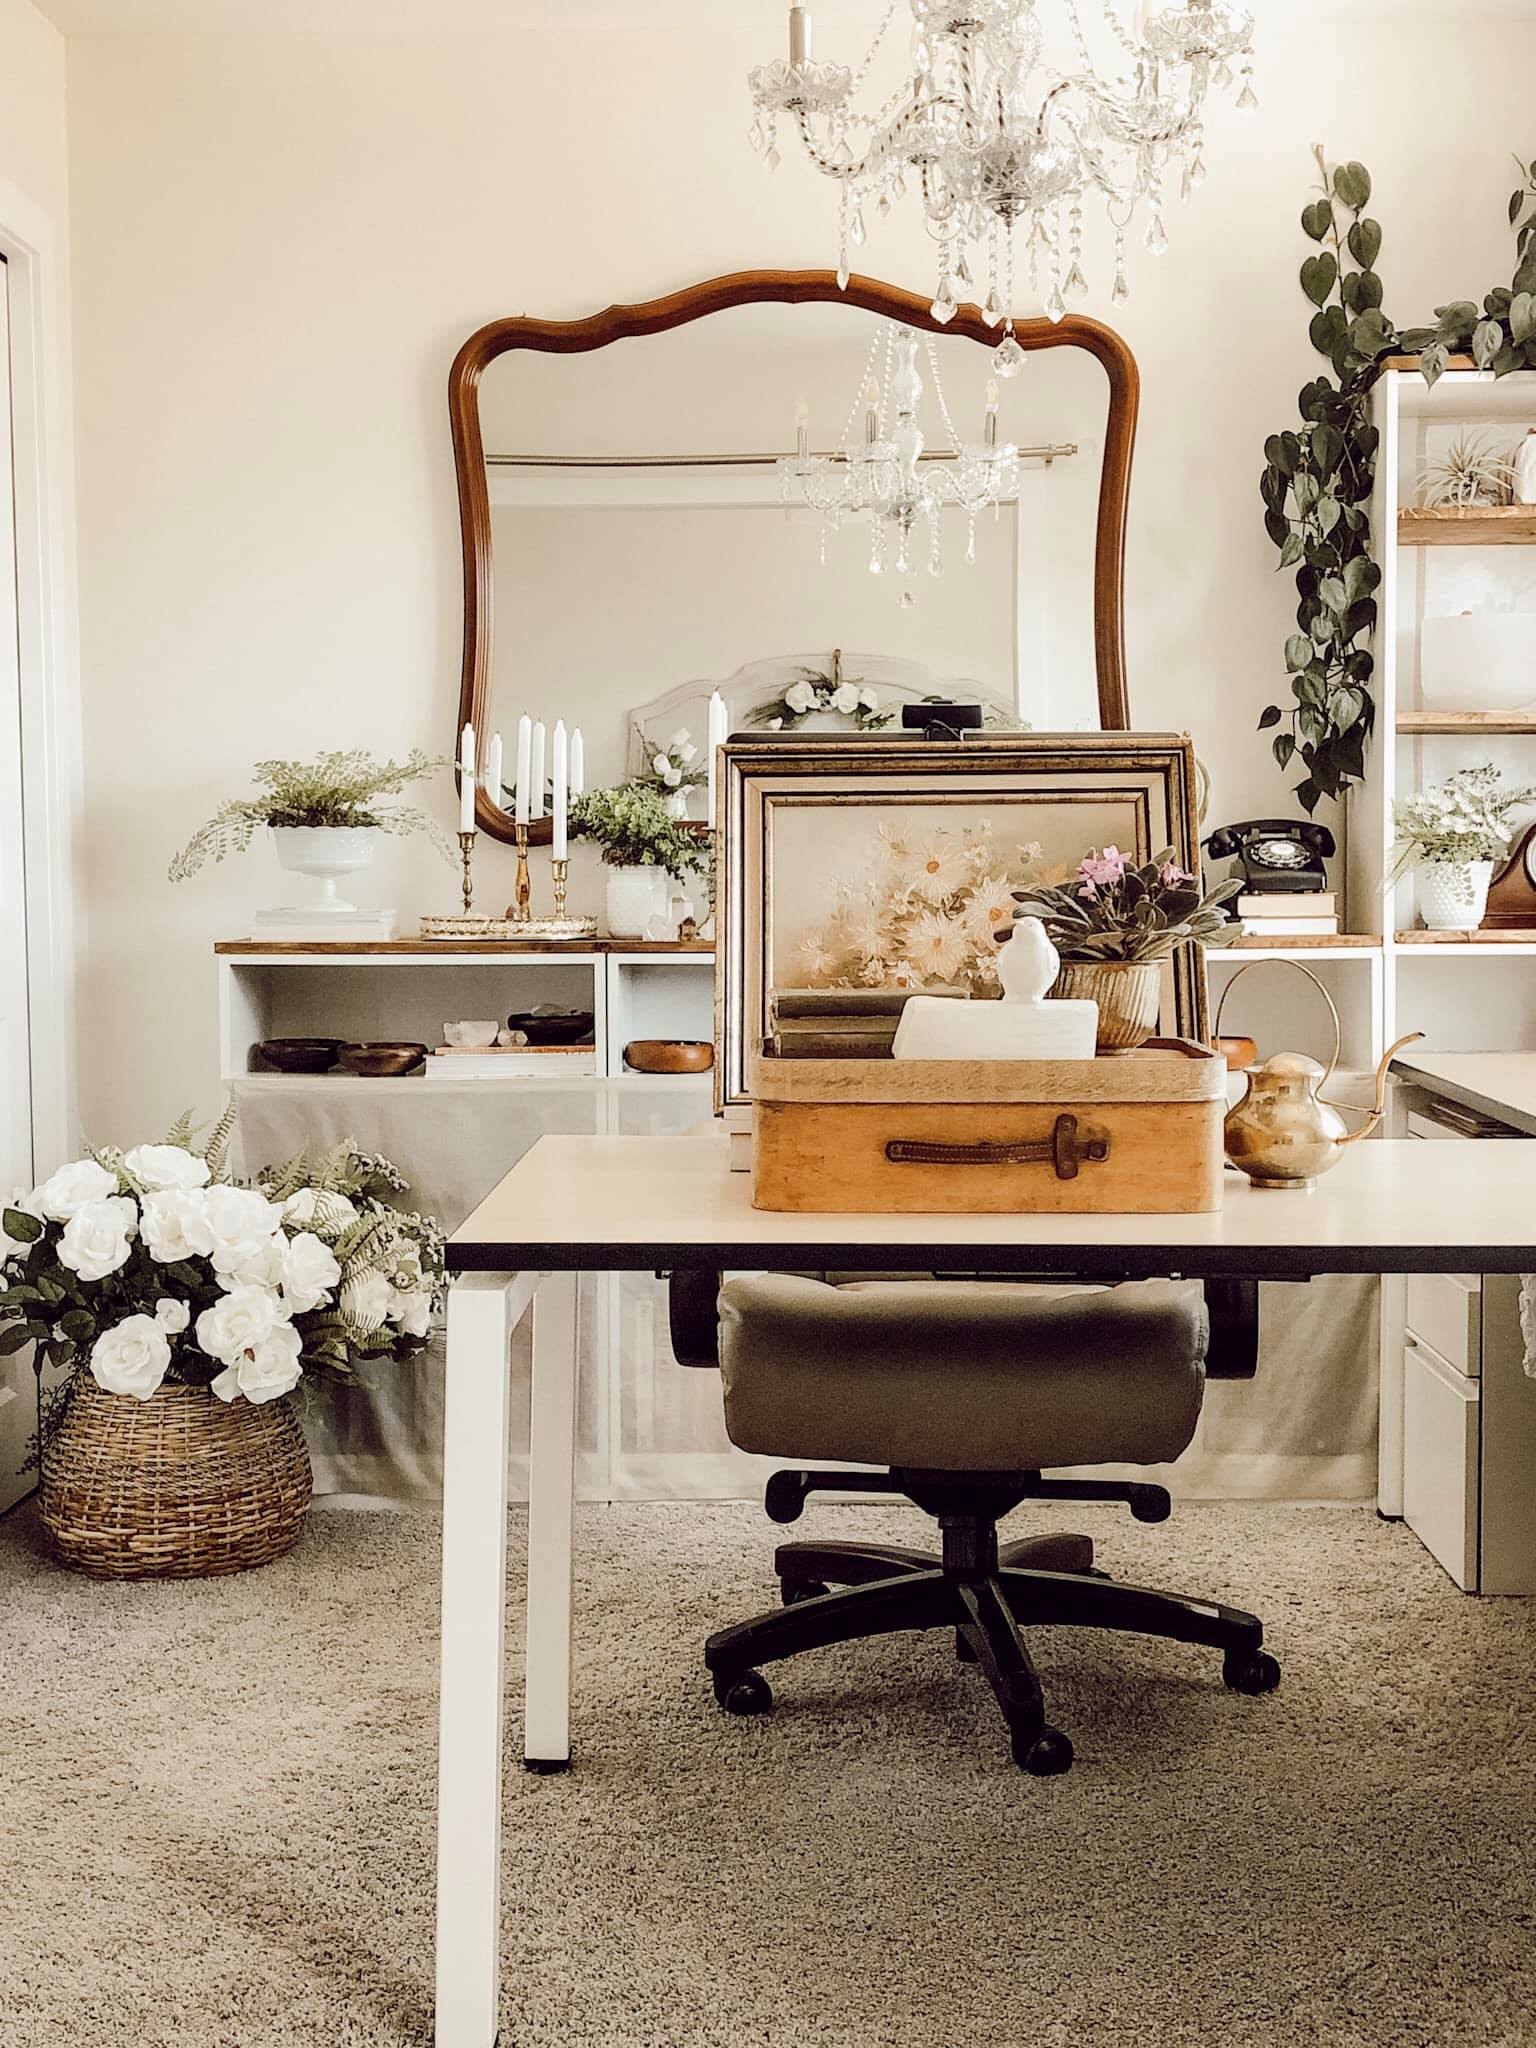 Feng Shui Home Design what's the best feng shui gua to have a home office - feng